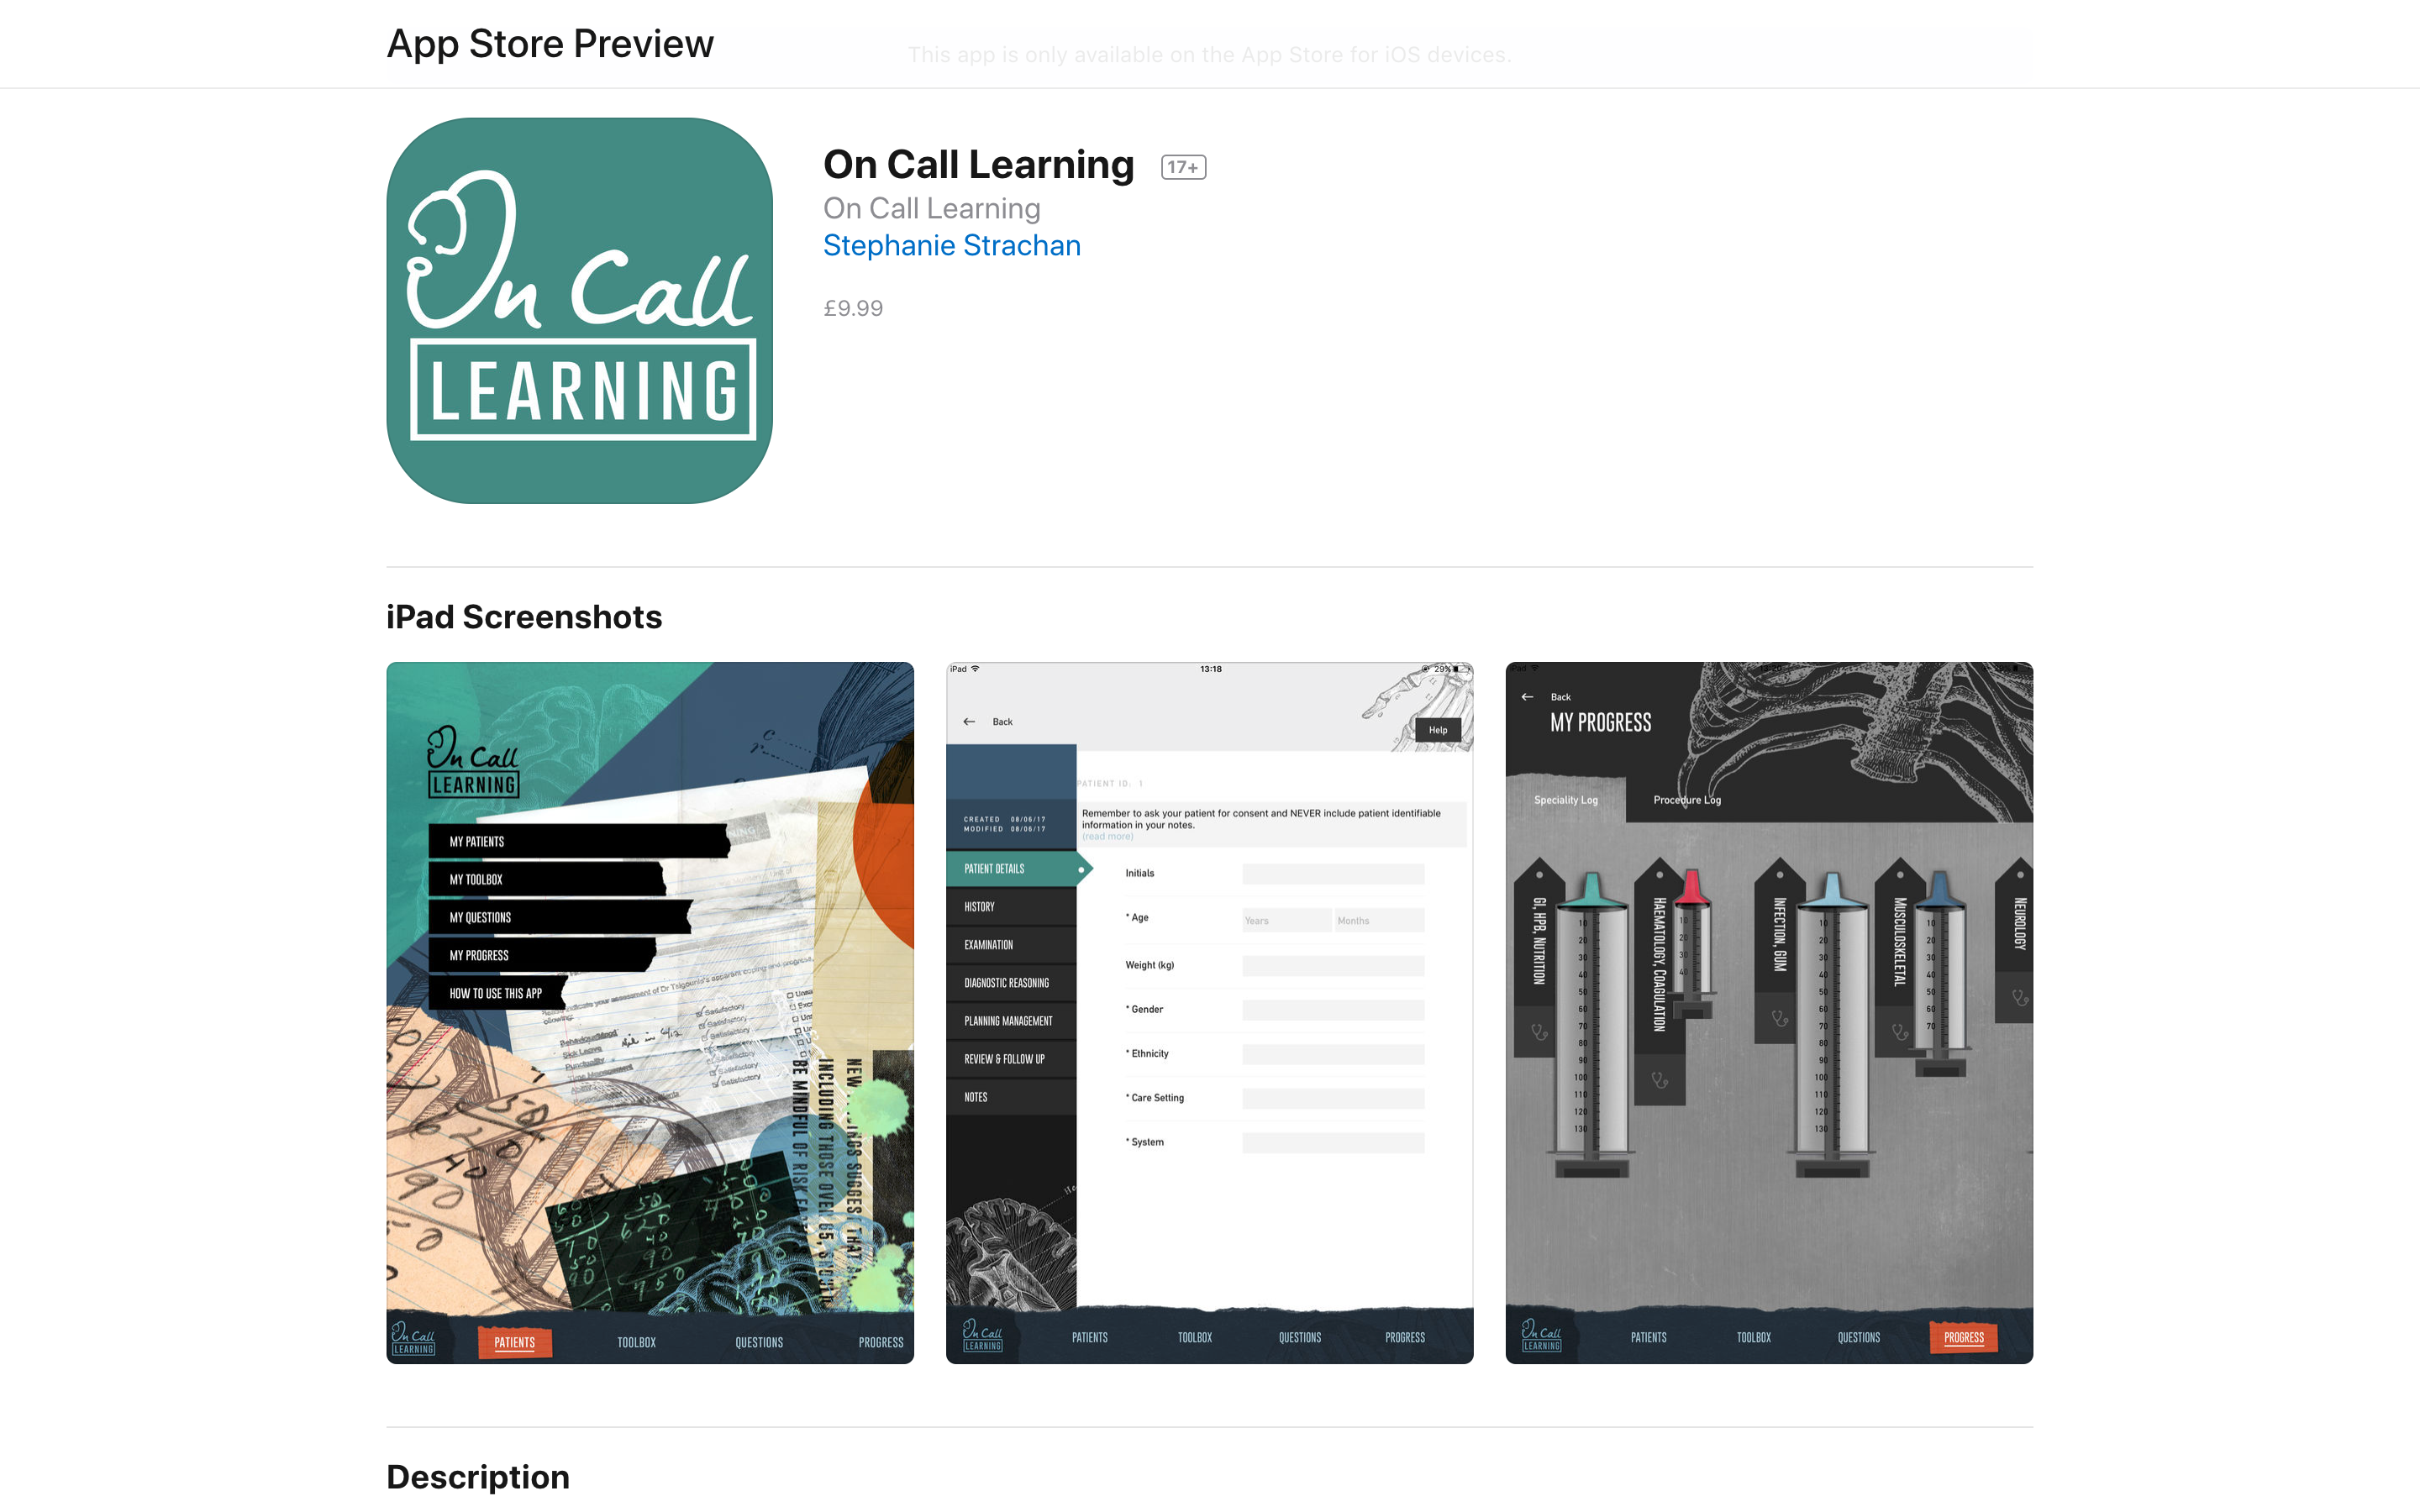 On Call Learning App Store Preview